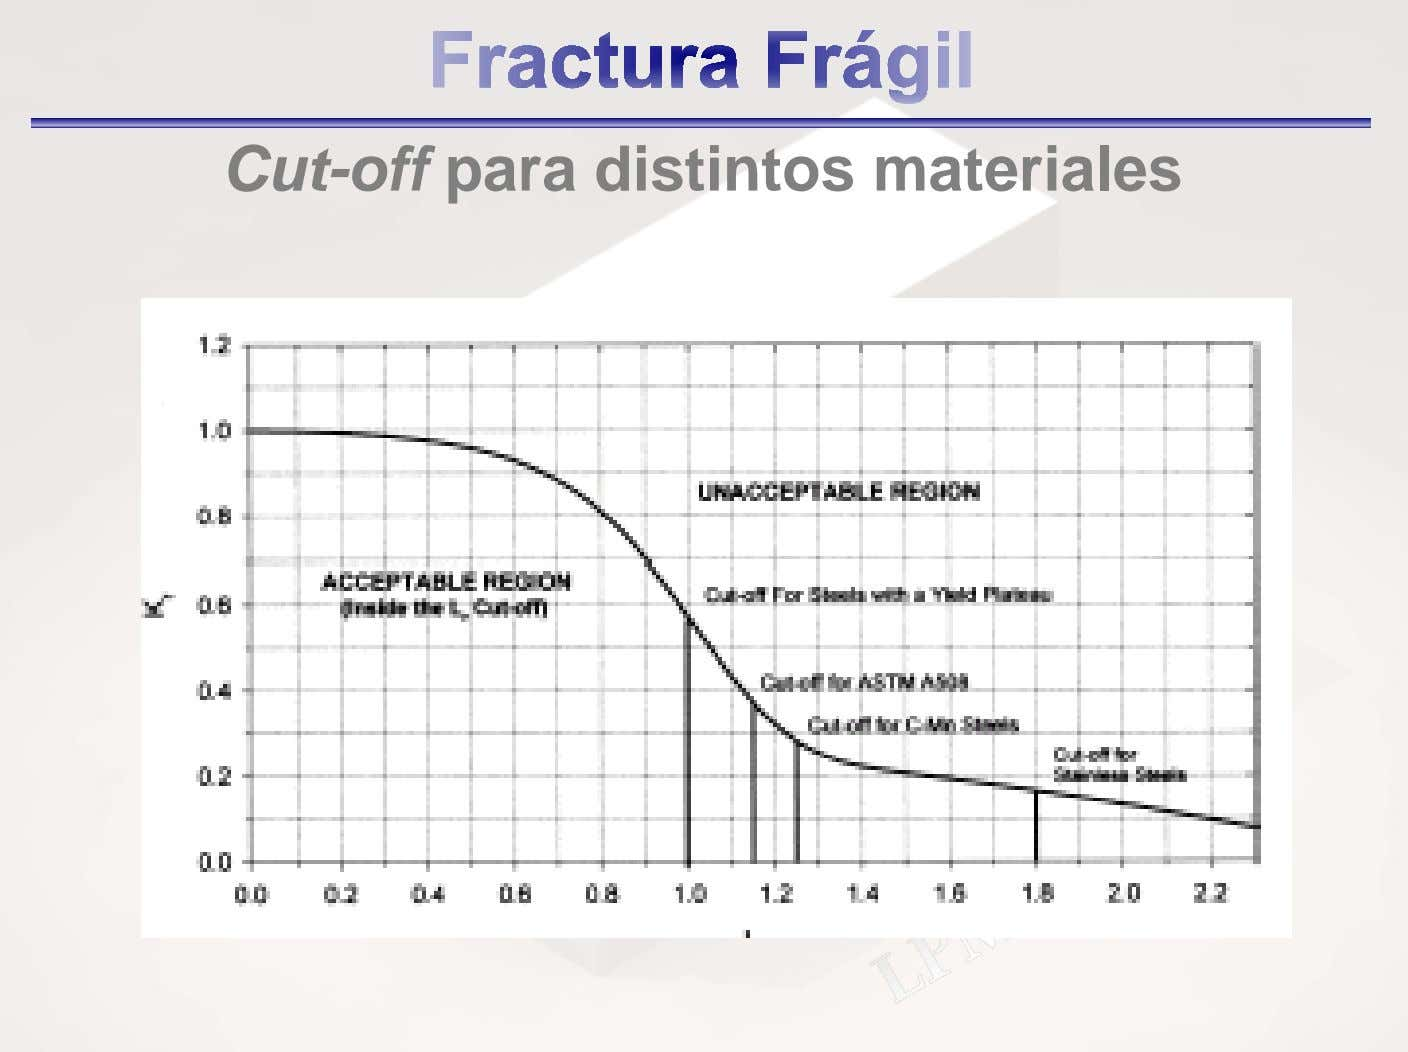 Cut-off para distintos materiales